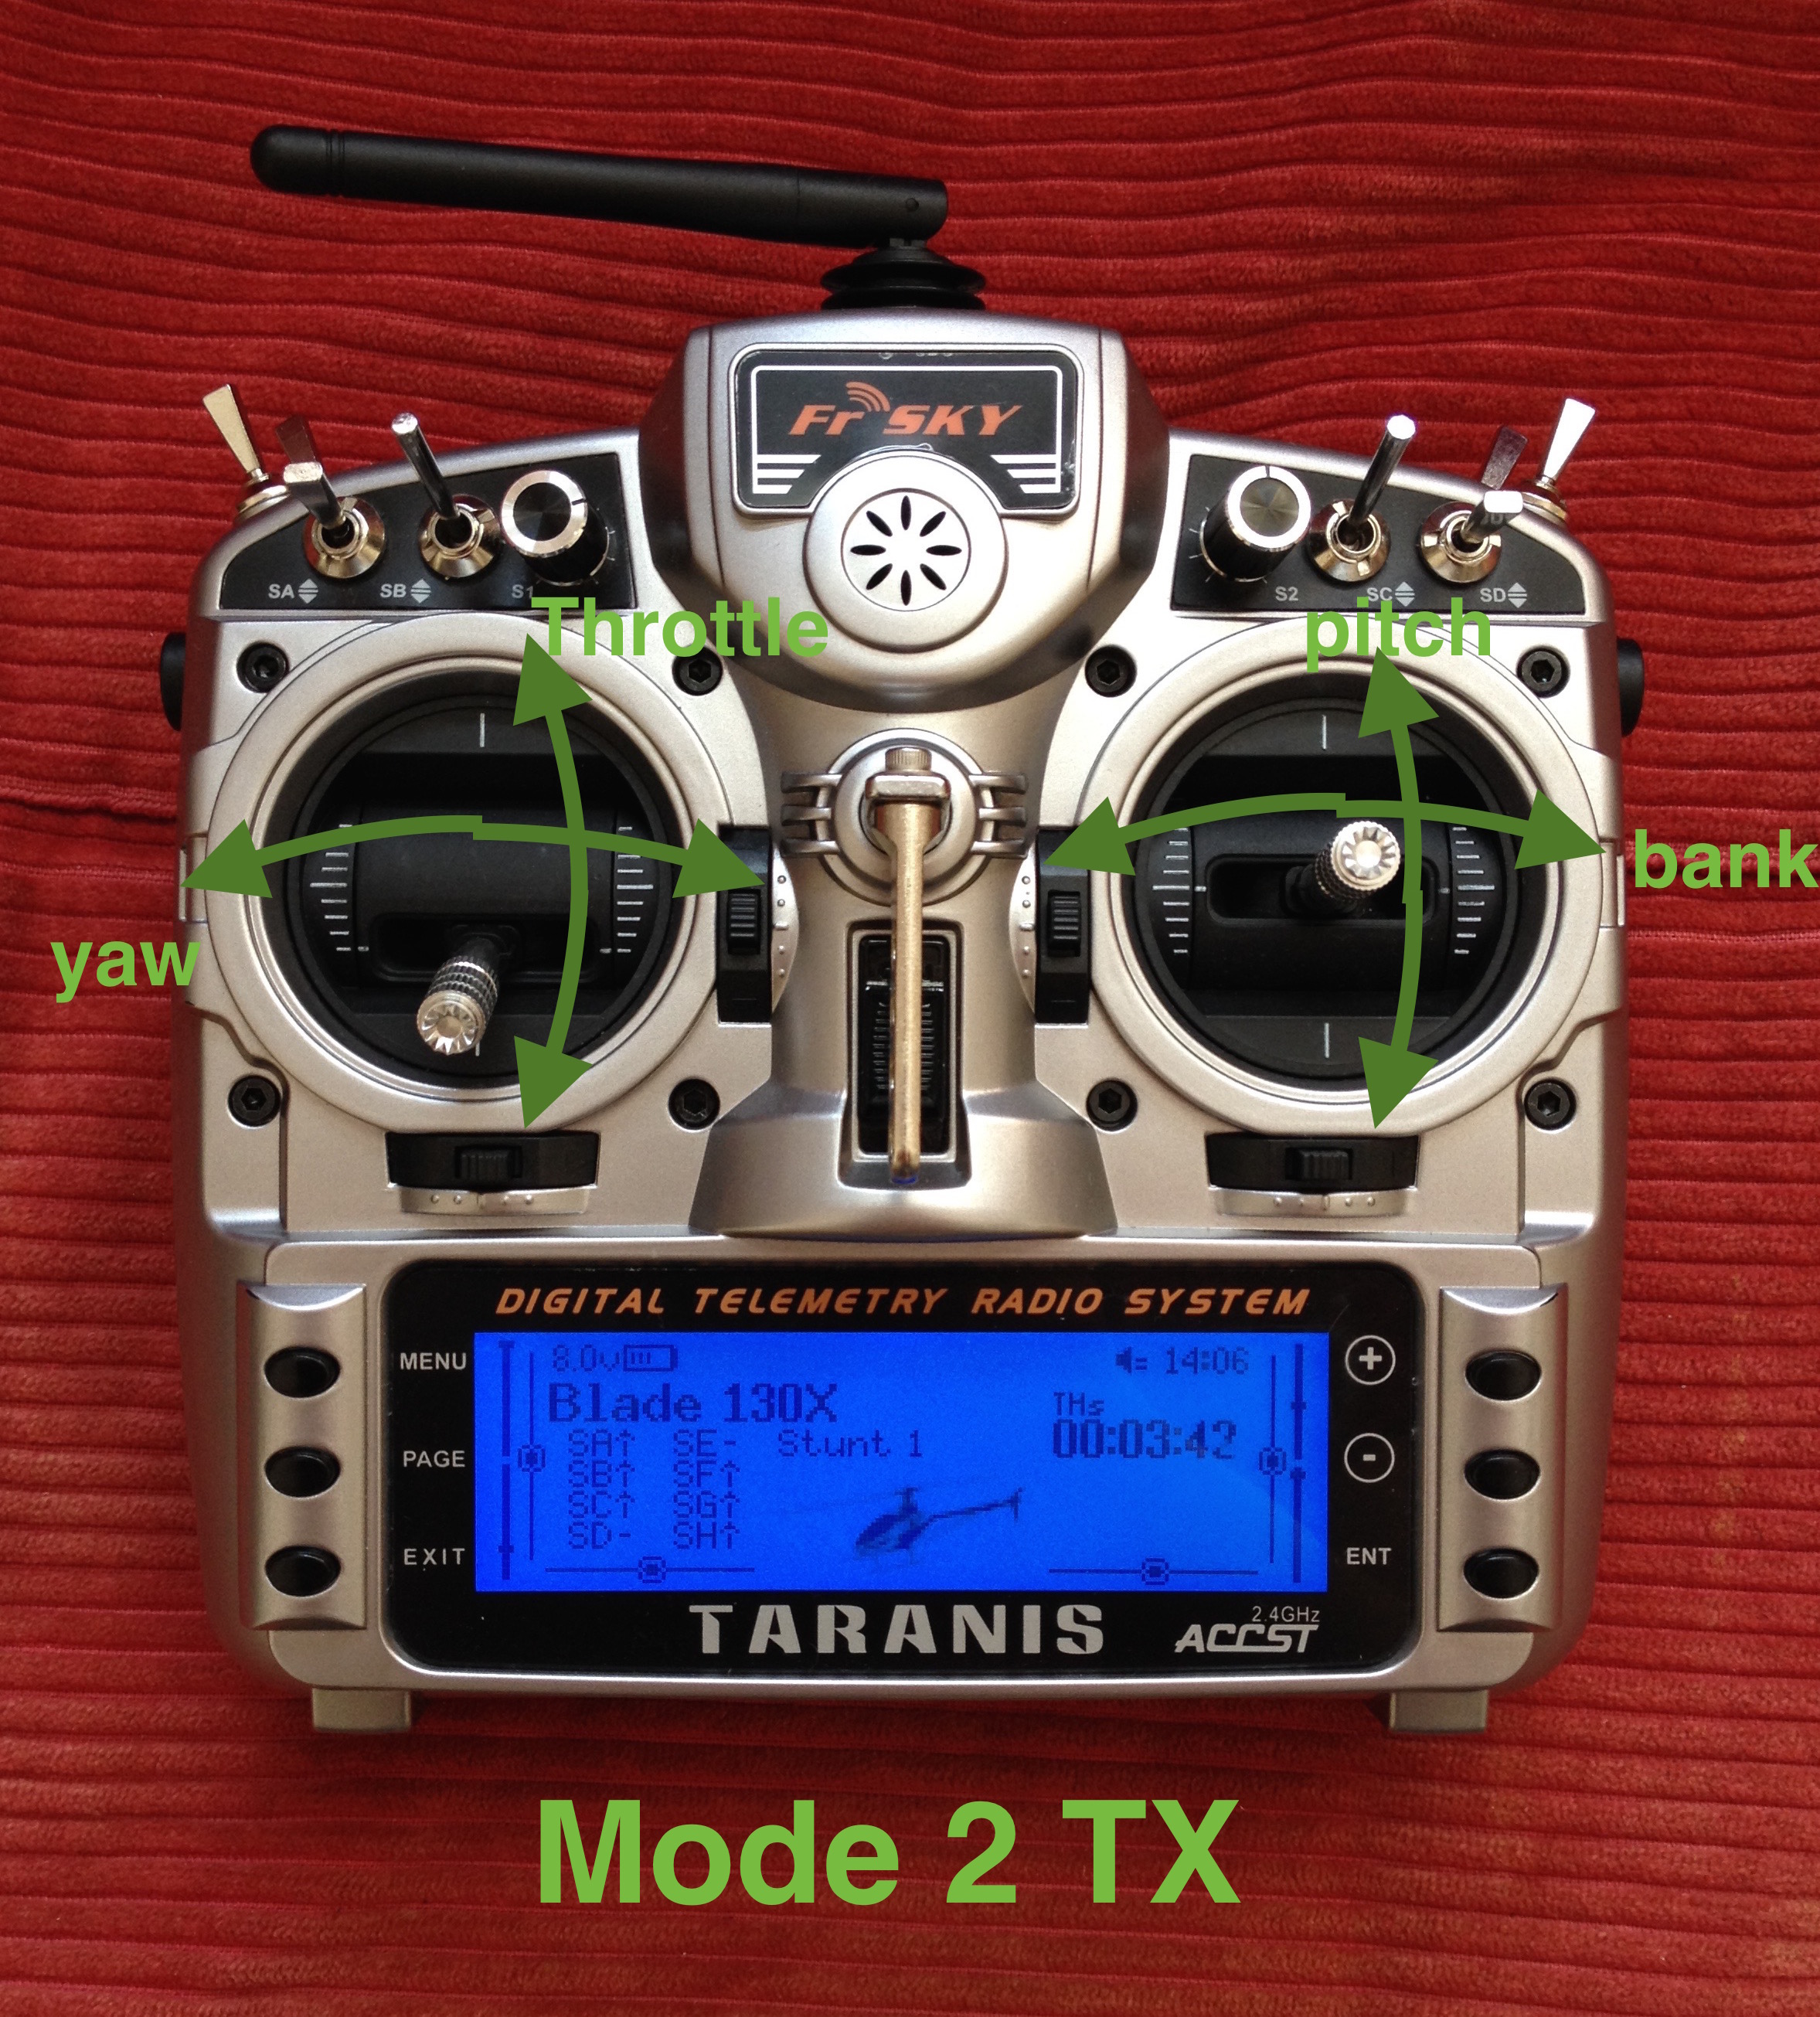 TX Modes and Flight Modes